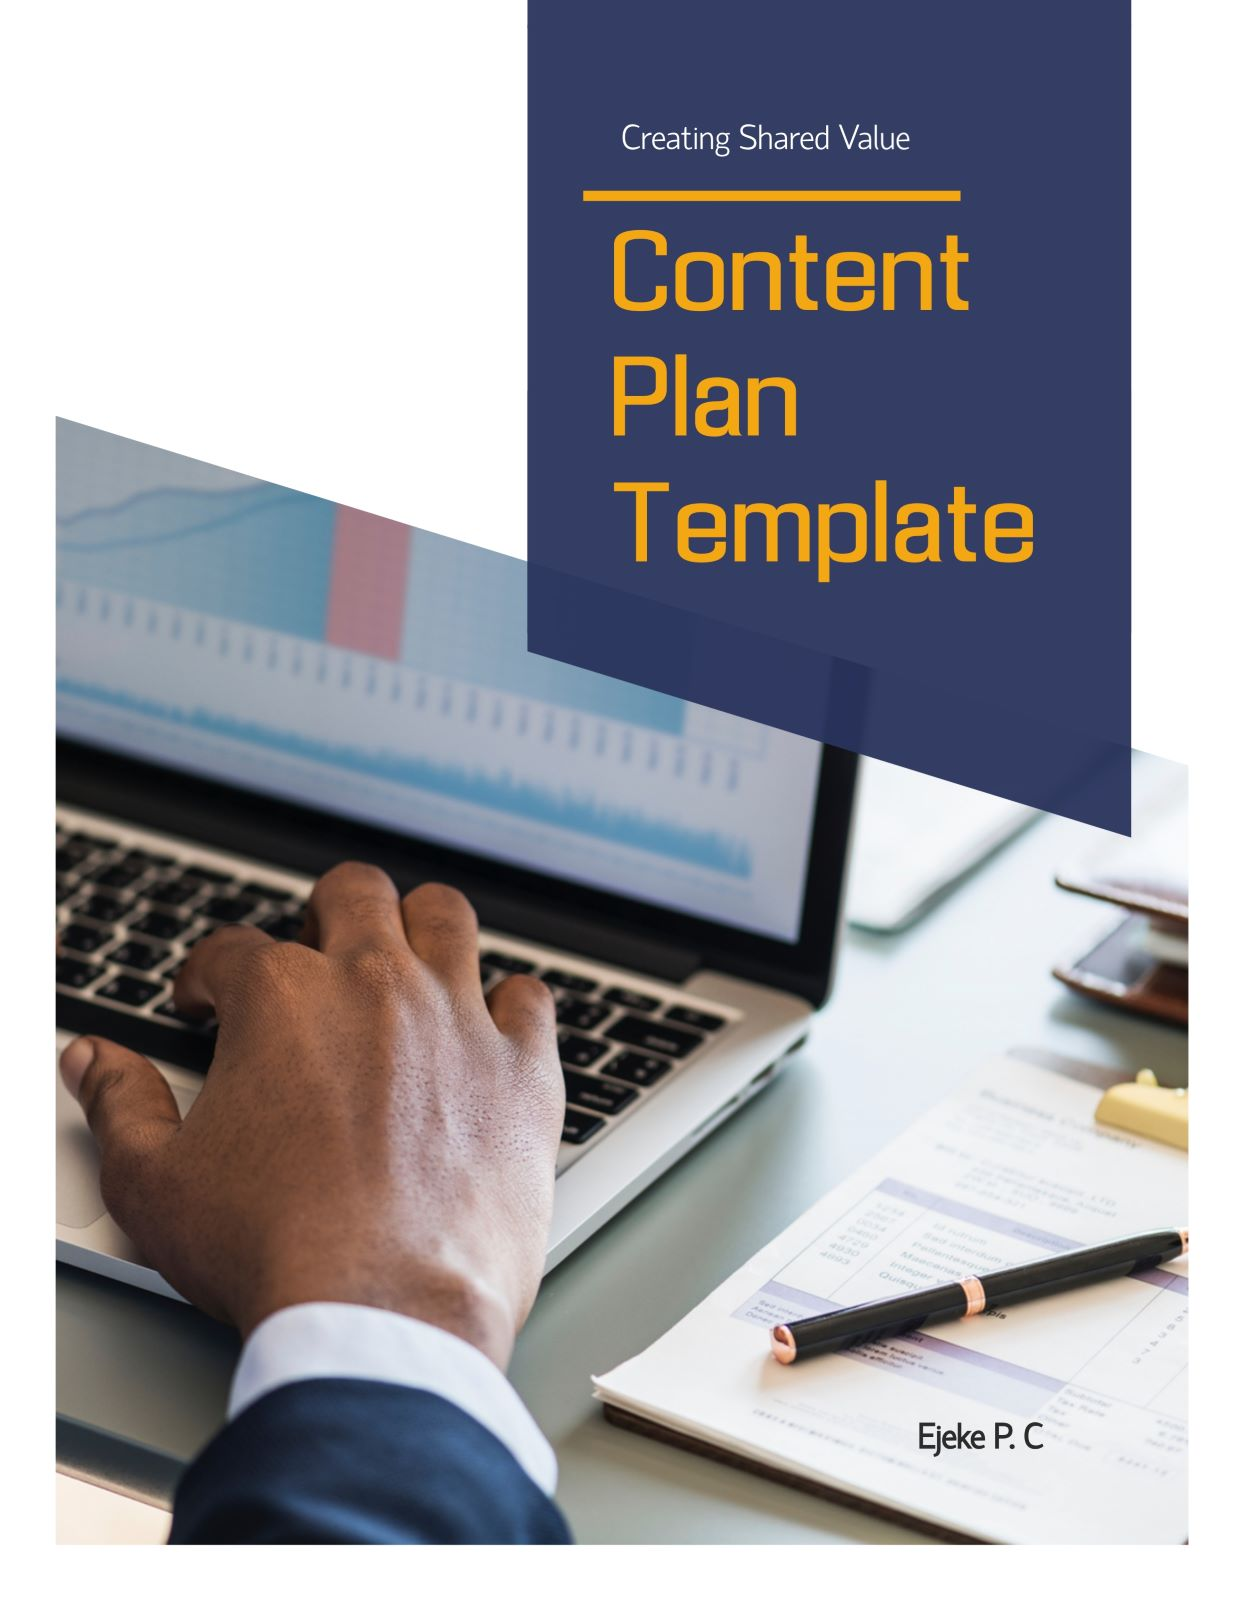 Content Plan Template